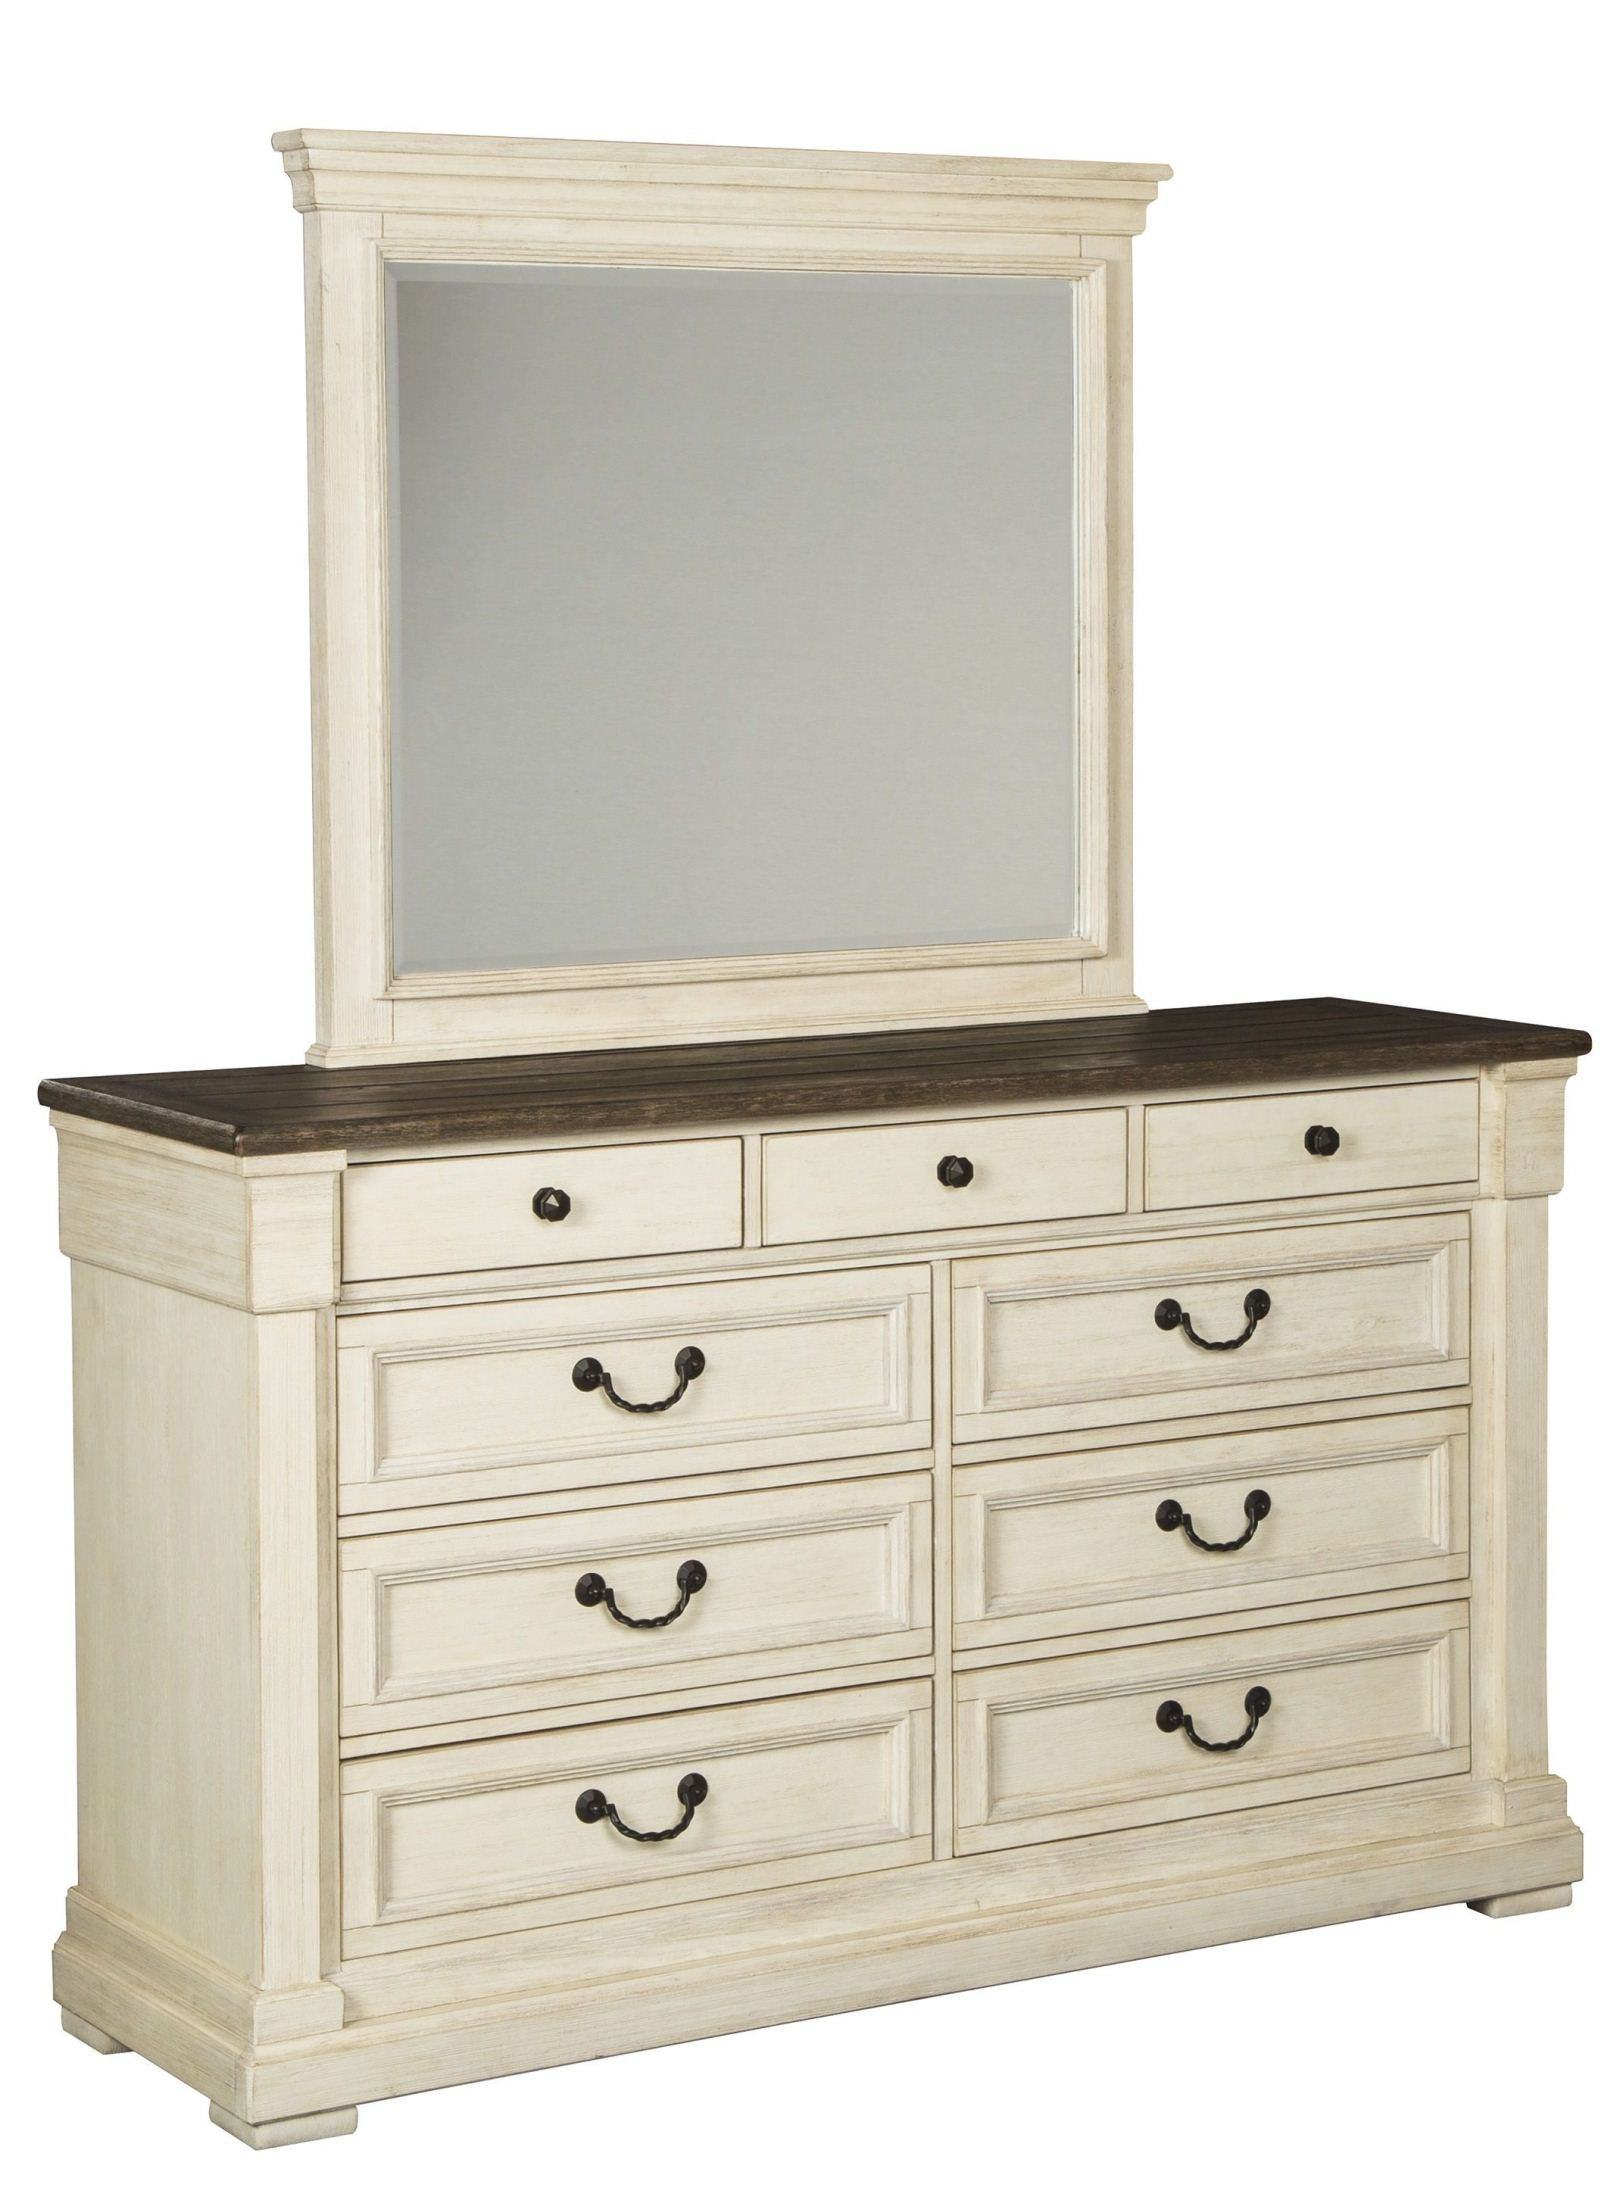 Cheap Bedroom Dressers | Coleman Furniture